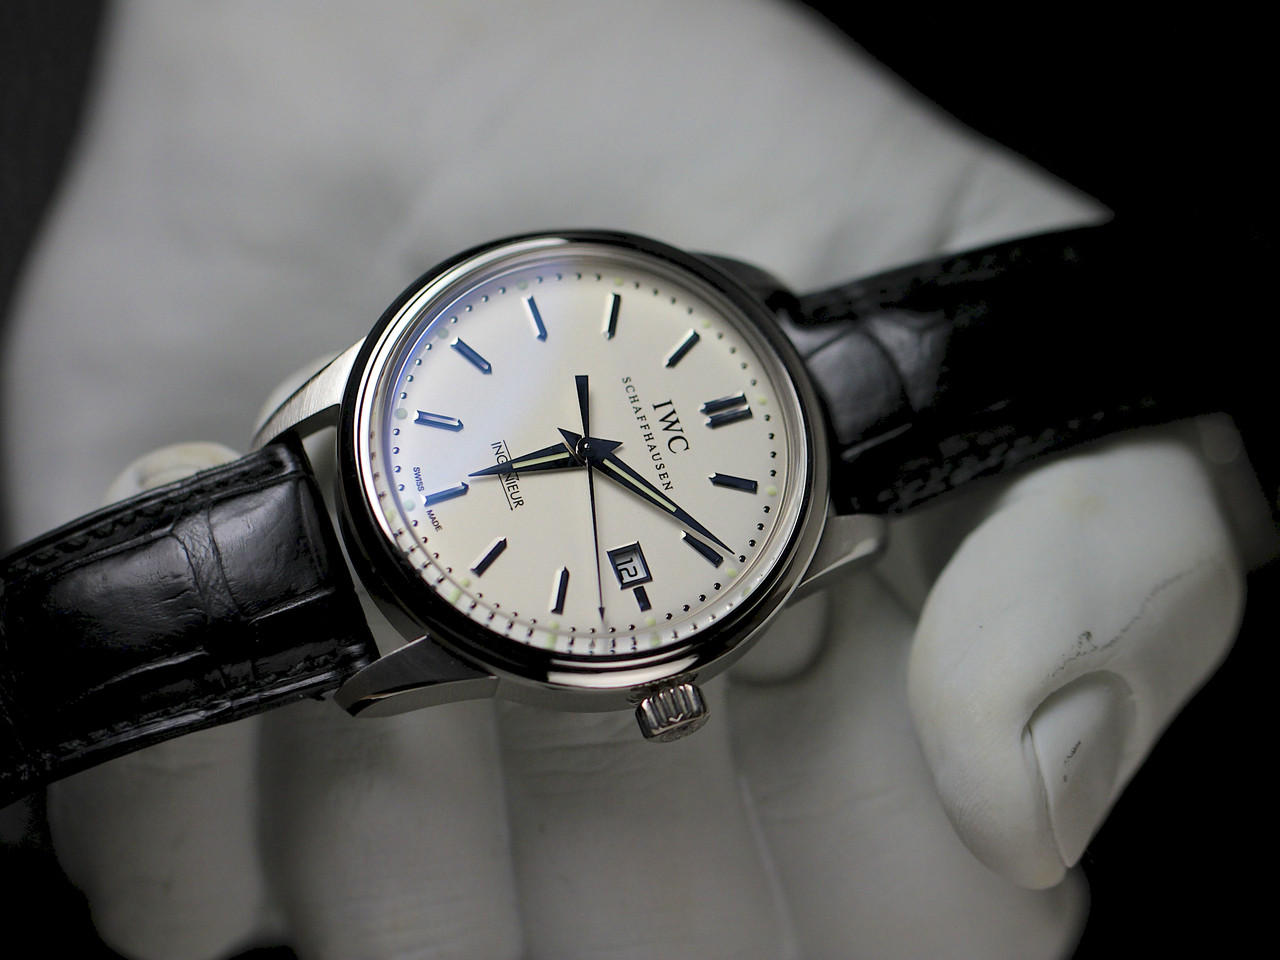 how to set the time on an iwc watch